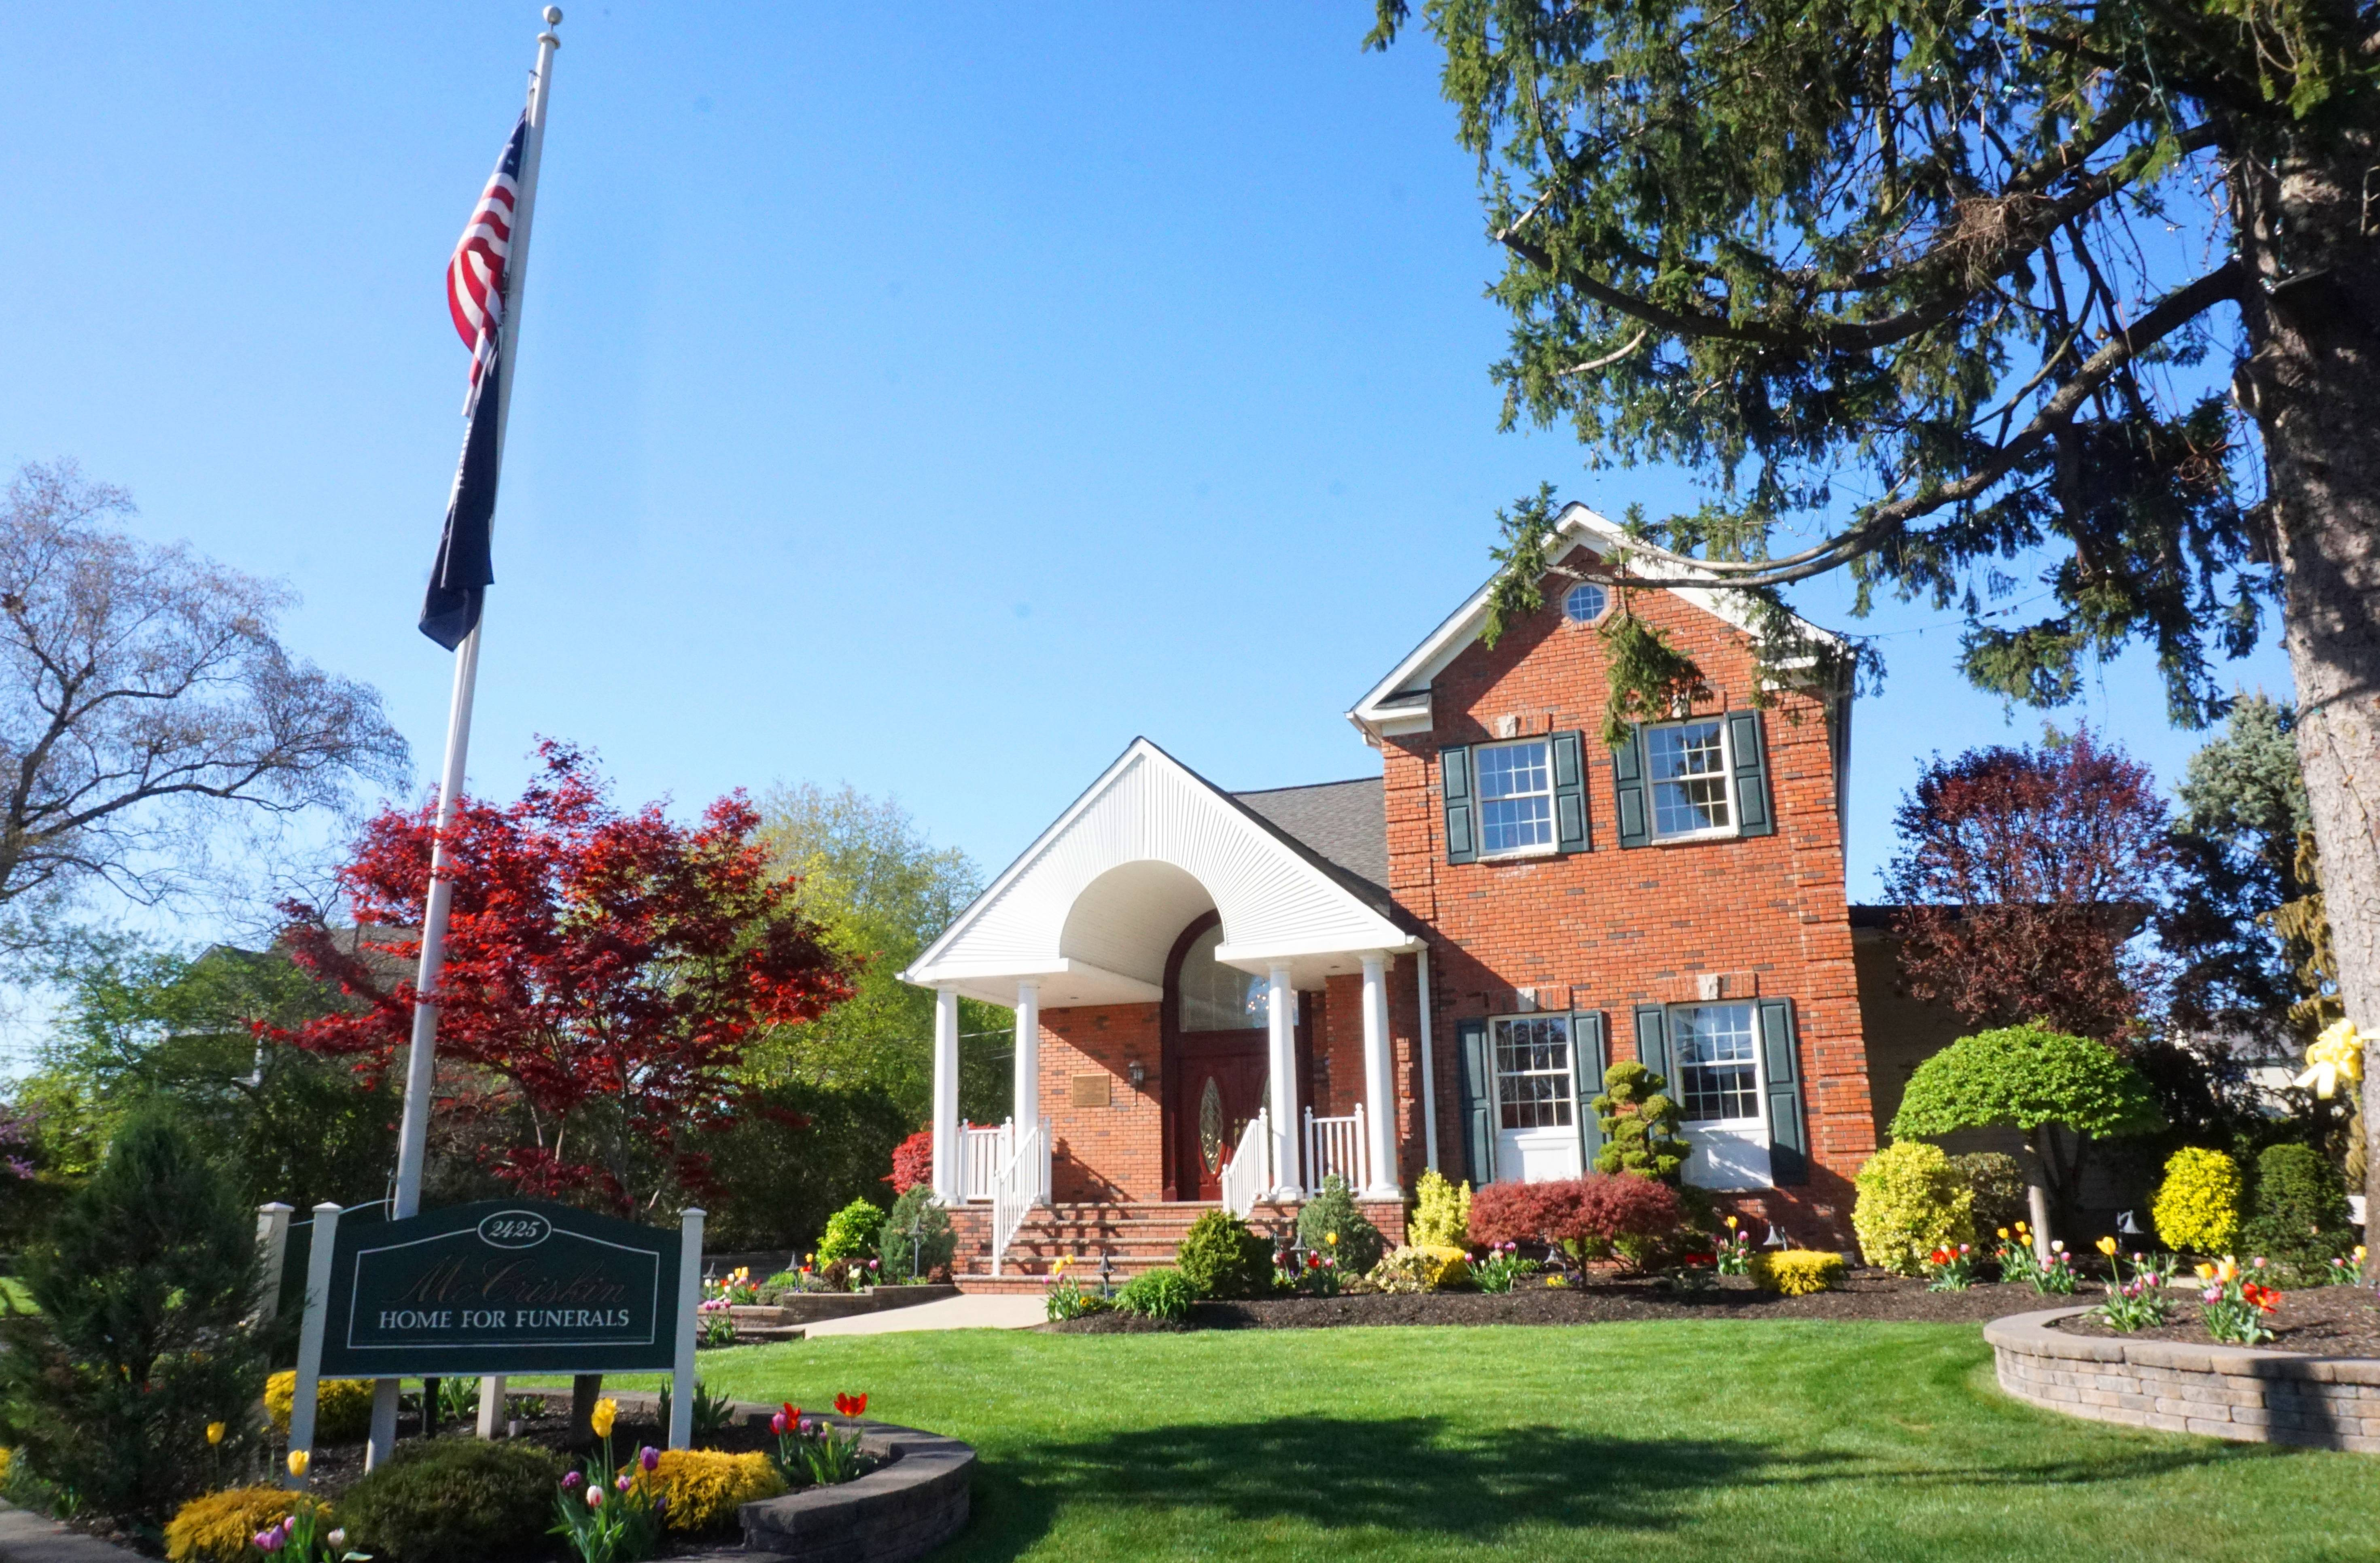 McCriskin Gustafson Family of Funeral Homes forting and